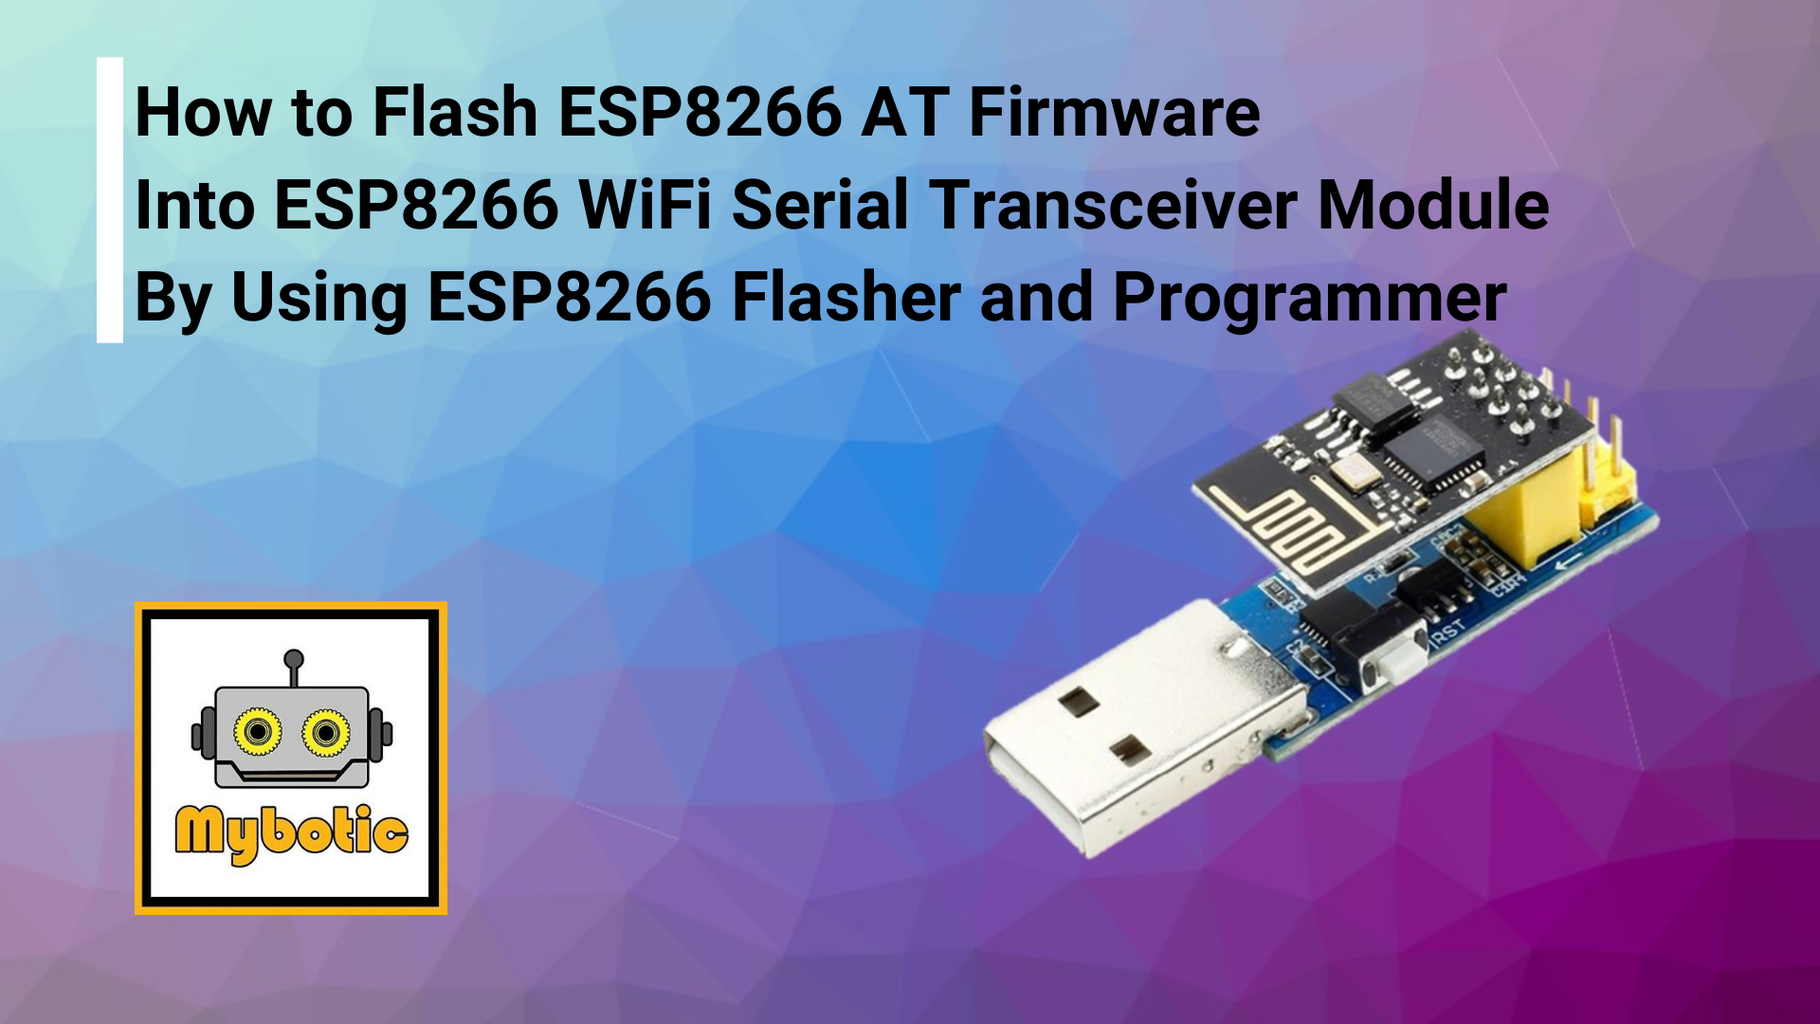 How to Flash or Program ESP8266 AT Firmware by Using ESP8266 Flasher and Programmer, IOT Wifi Module